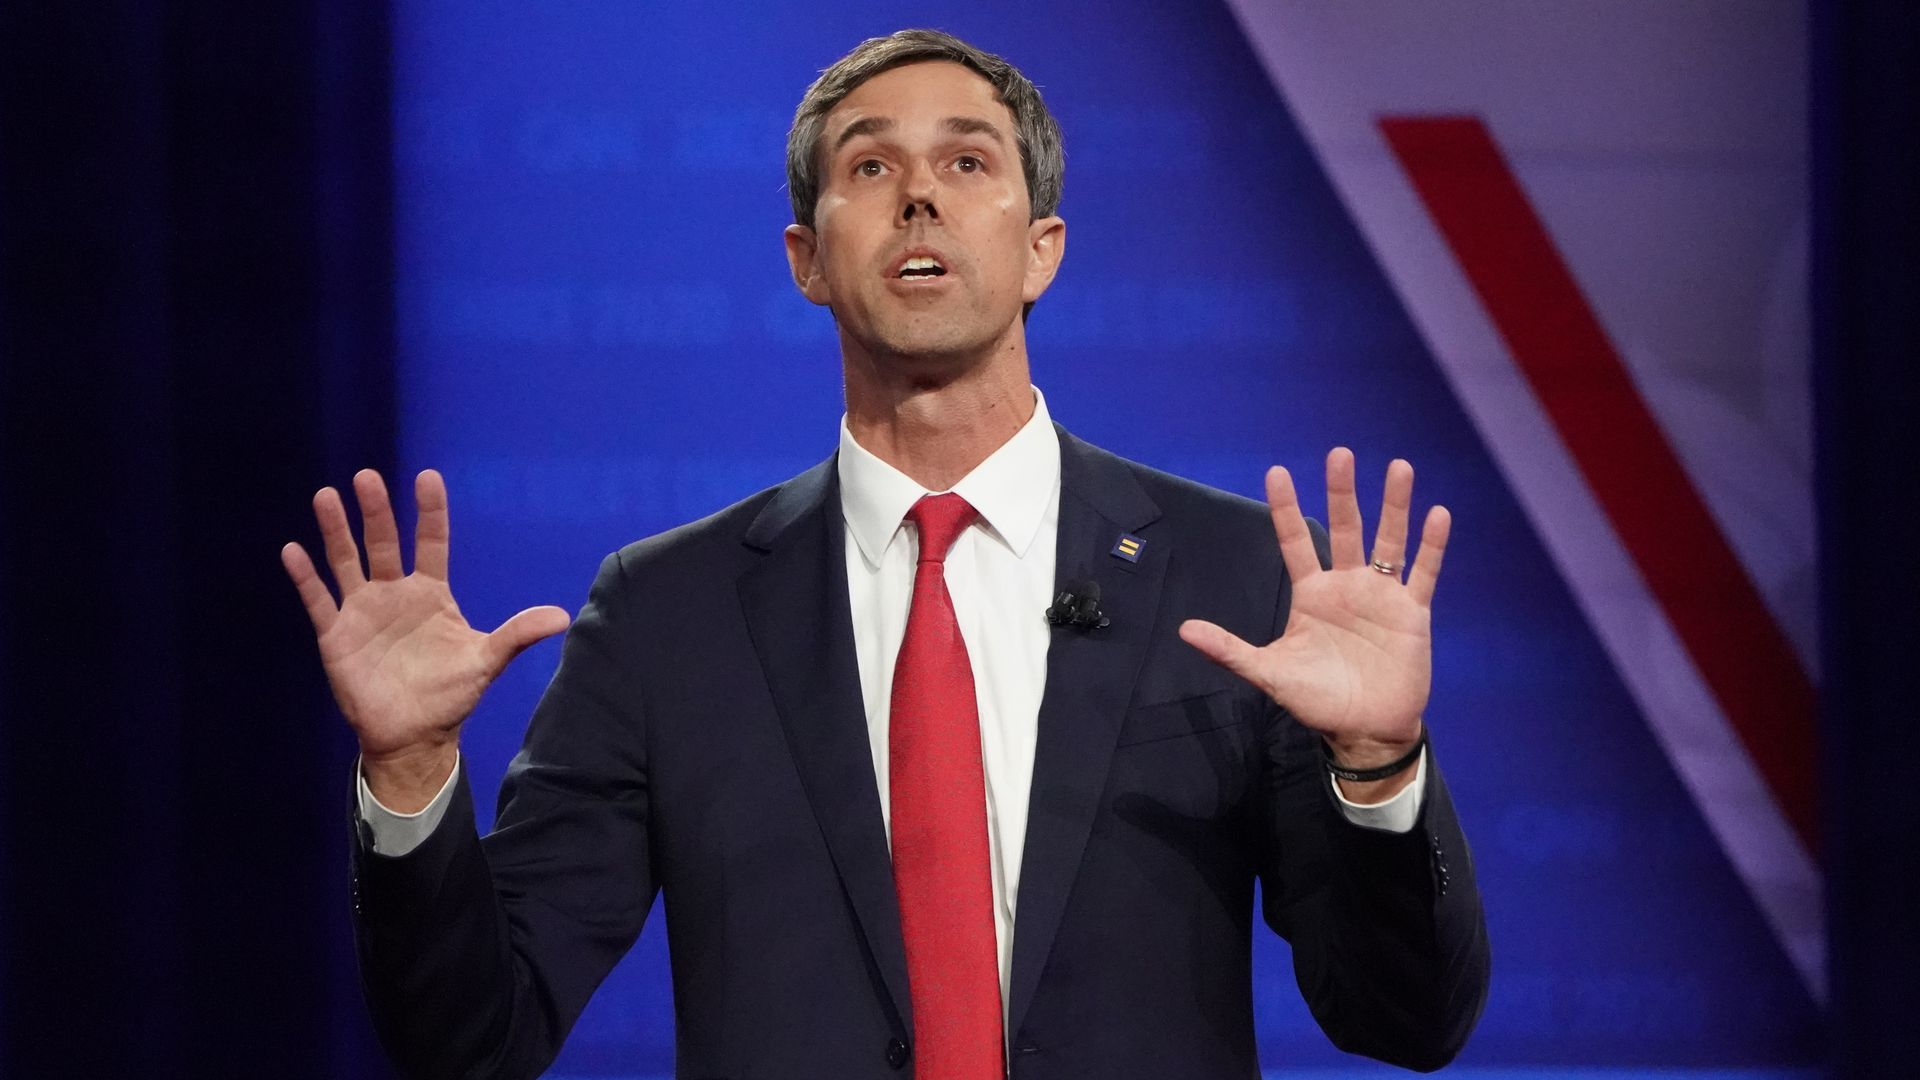 Beto O'Rourke campaign says it raised $4.5 million in Q3